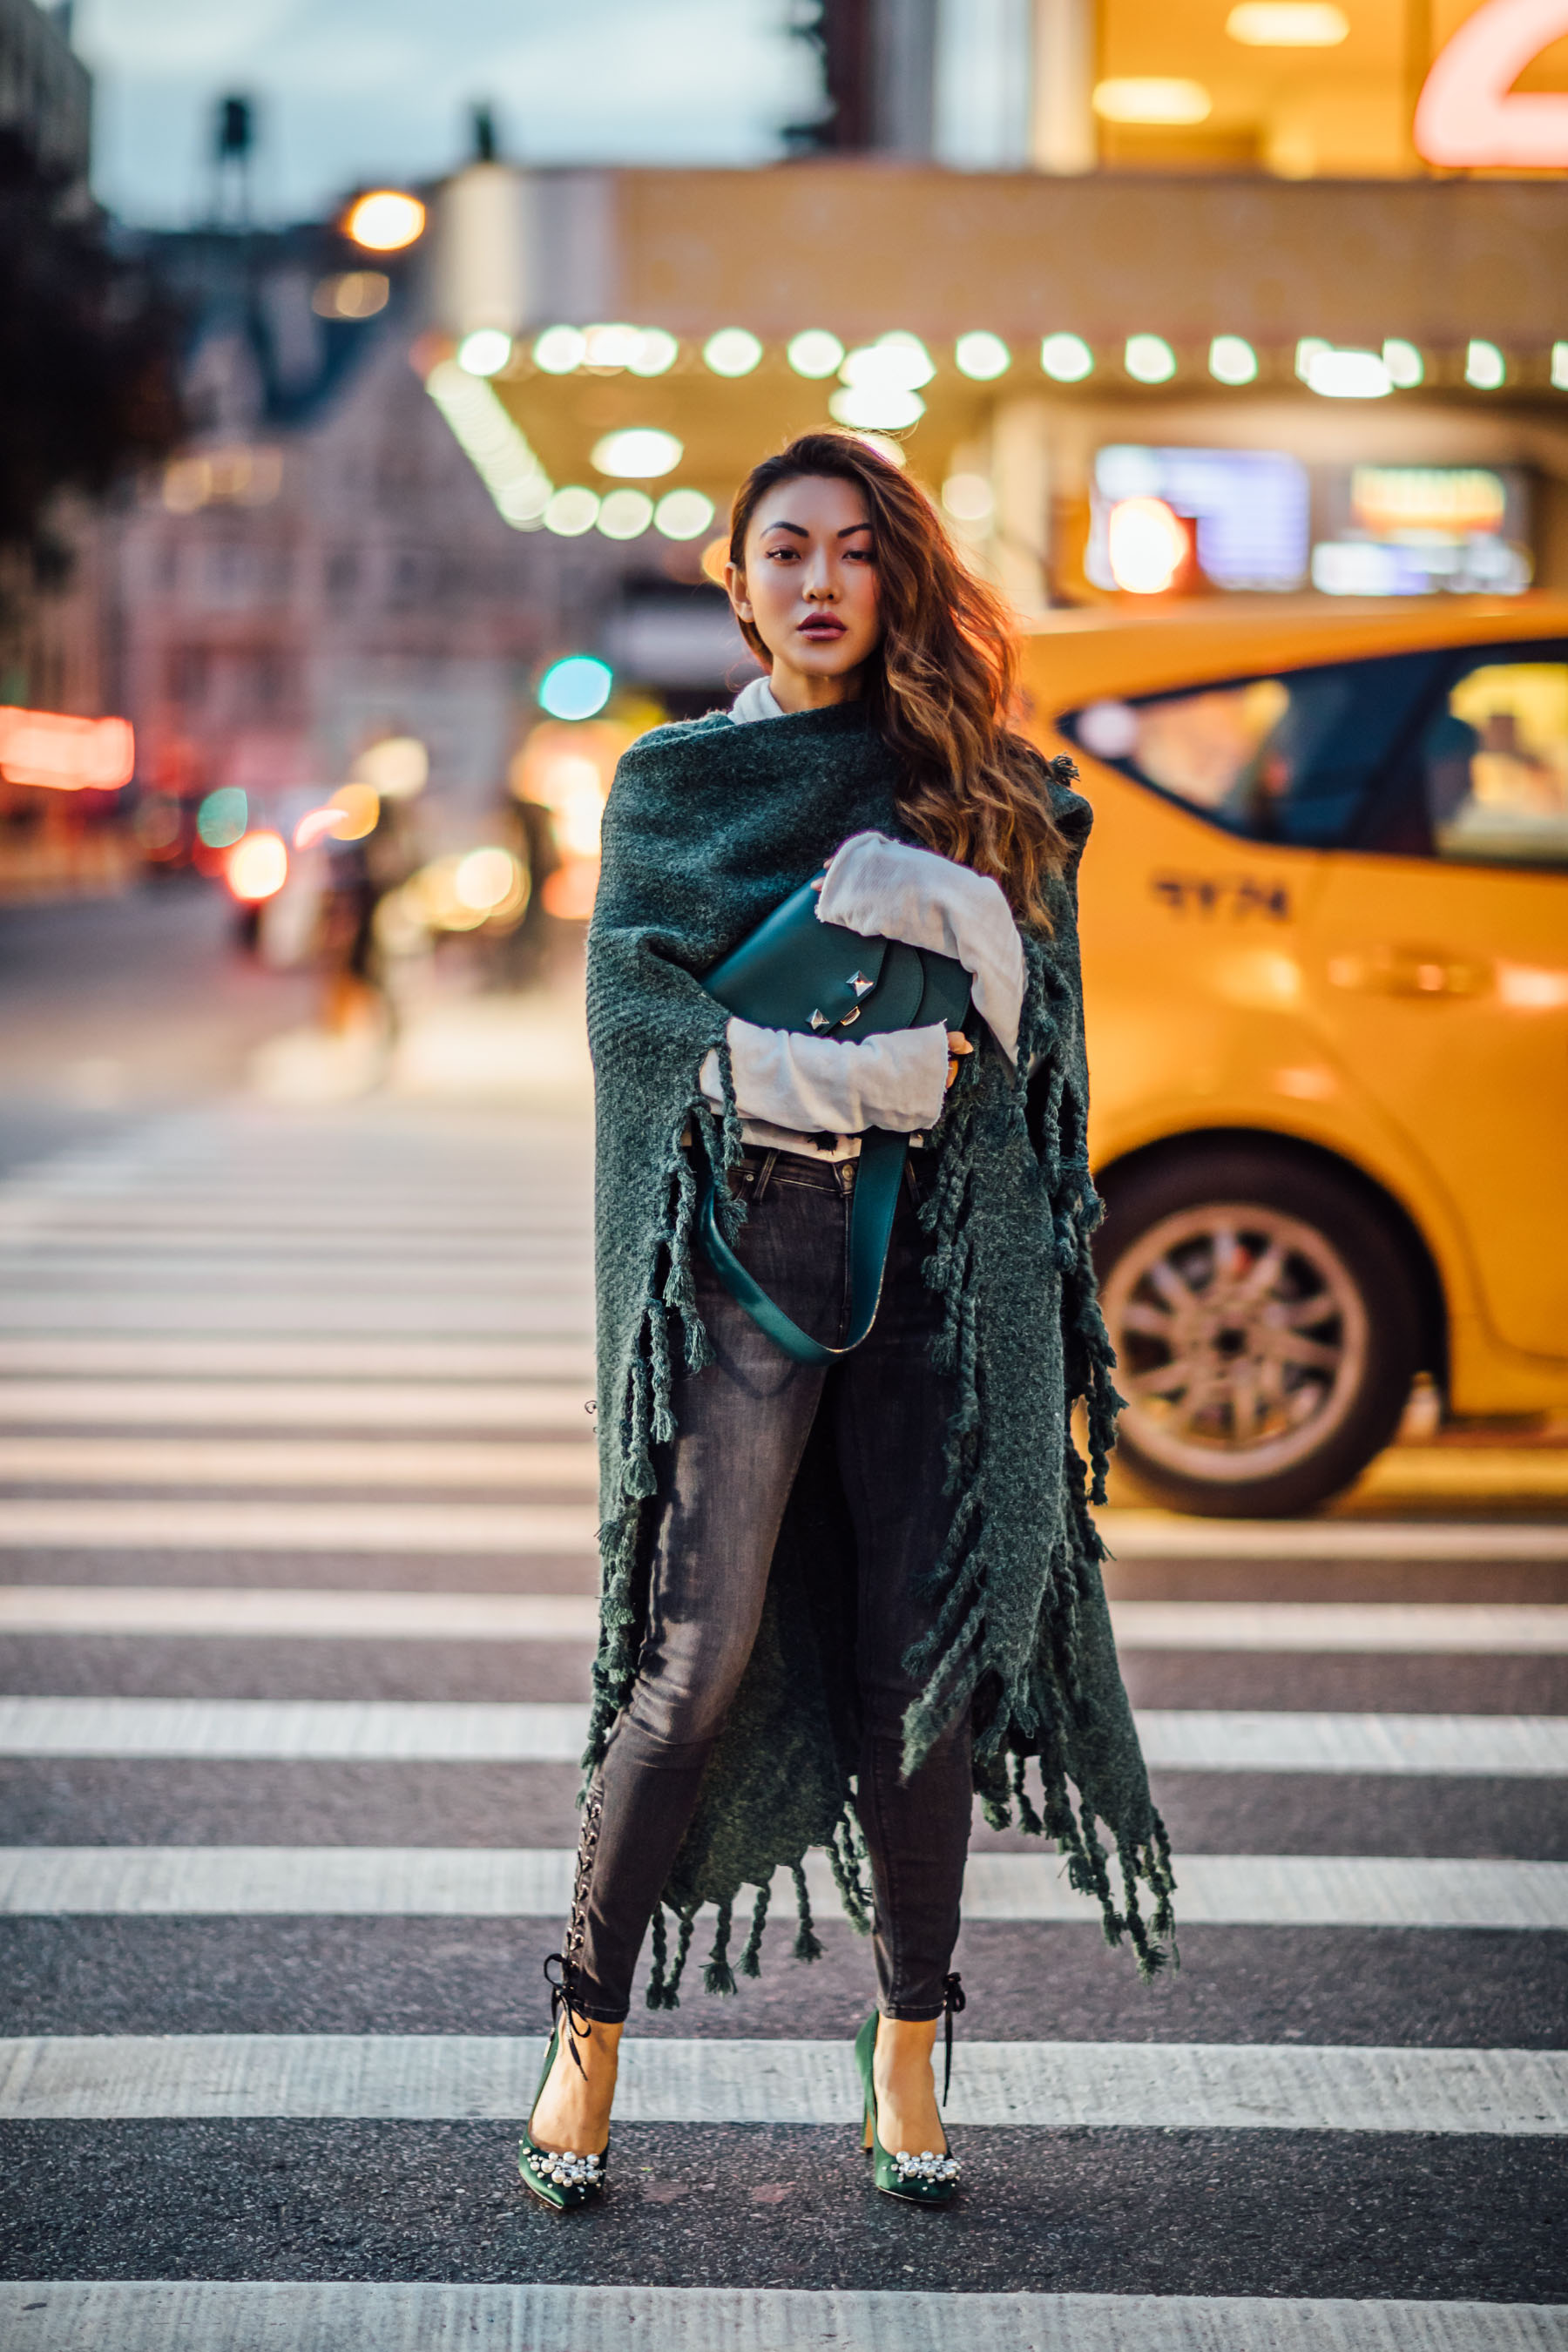 Fashion Details to Elevate Your Favorite Basics - Fringe Kimono, Lace up jeans, embellished pumps // Notjessfashion // Jessica wang, winter outfits, stylish winter outfit, fashion blogger, street style, winter street style, green satin pumps, nine west heels, fringe details, asian blogger, salar bag, green outfits